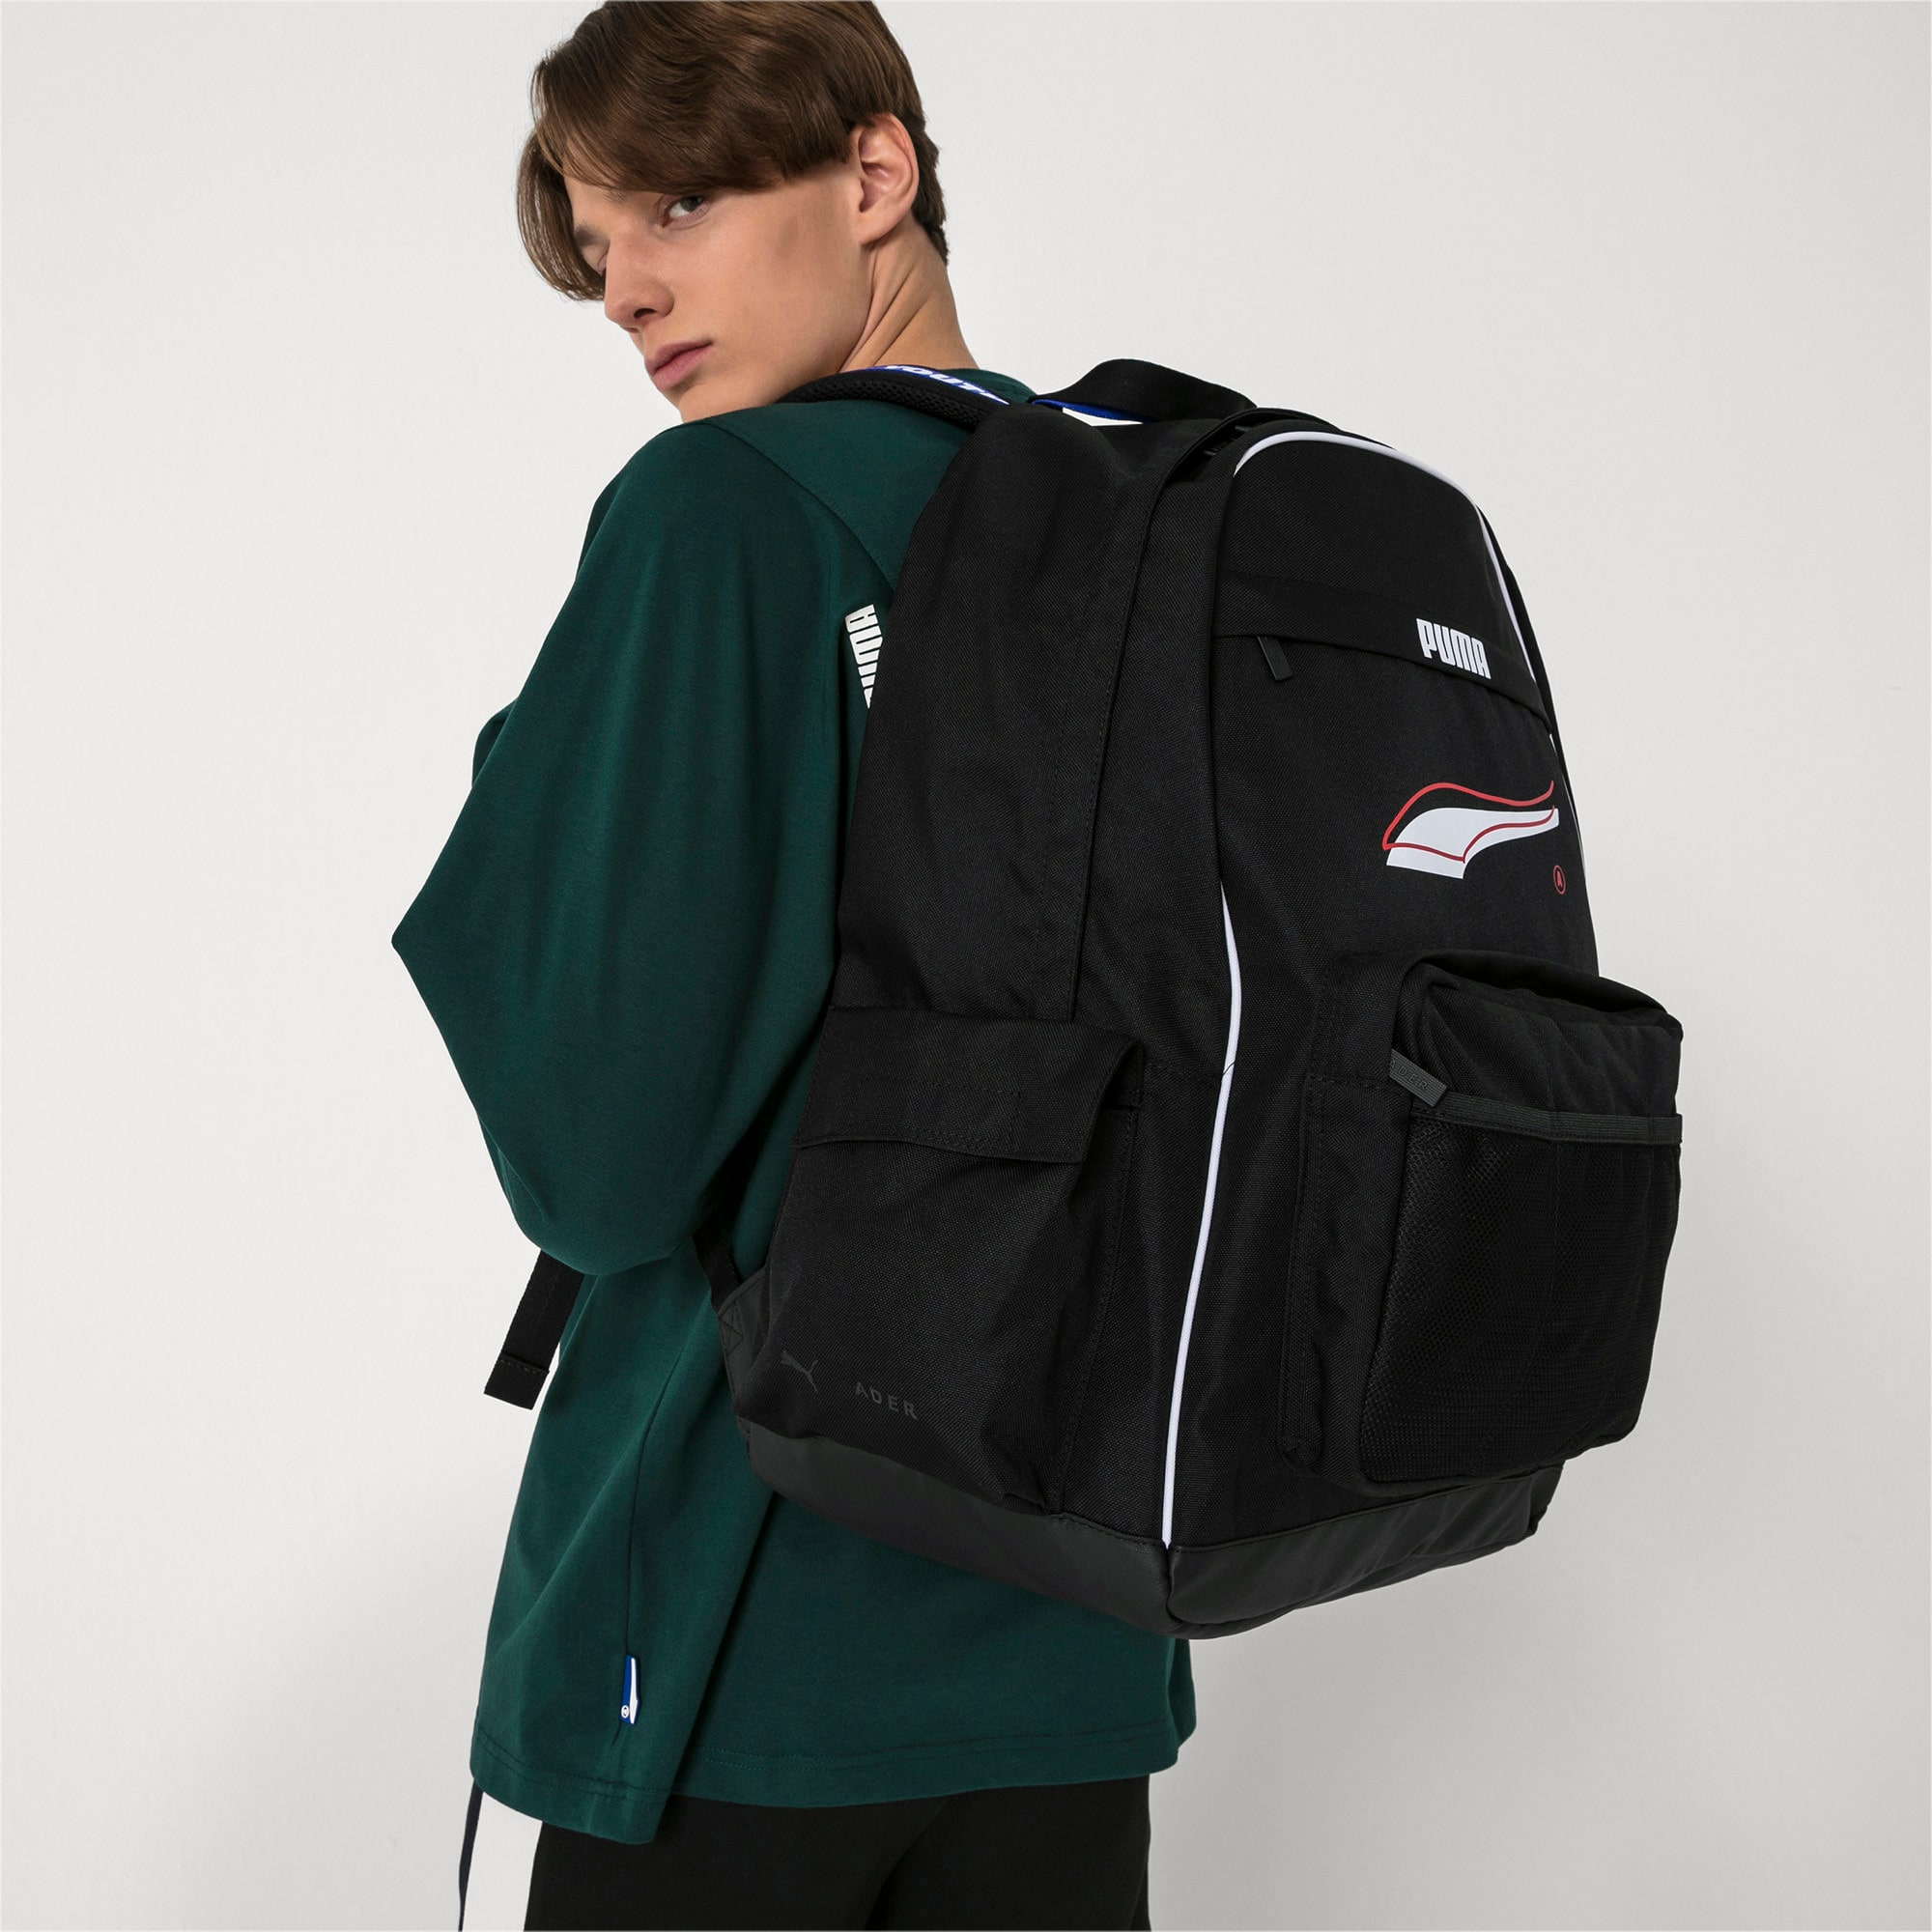 Thumbnail 4 of PUMA x ADER ERROR Rucksack, Puma Black, medium